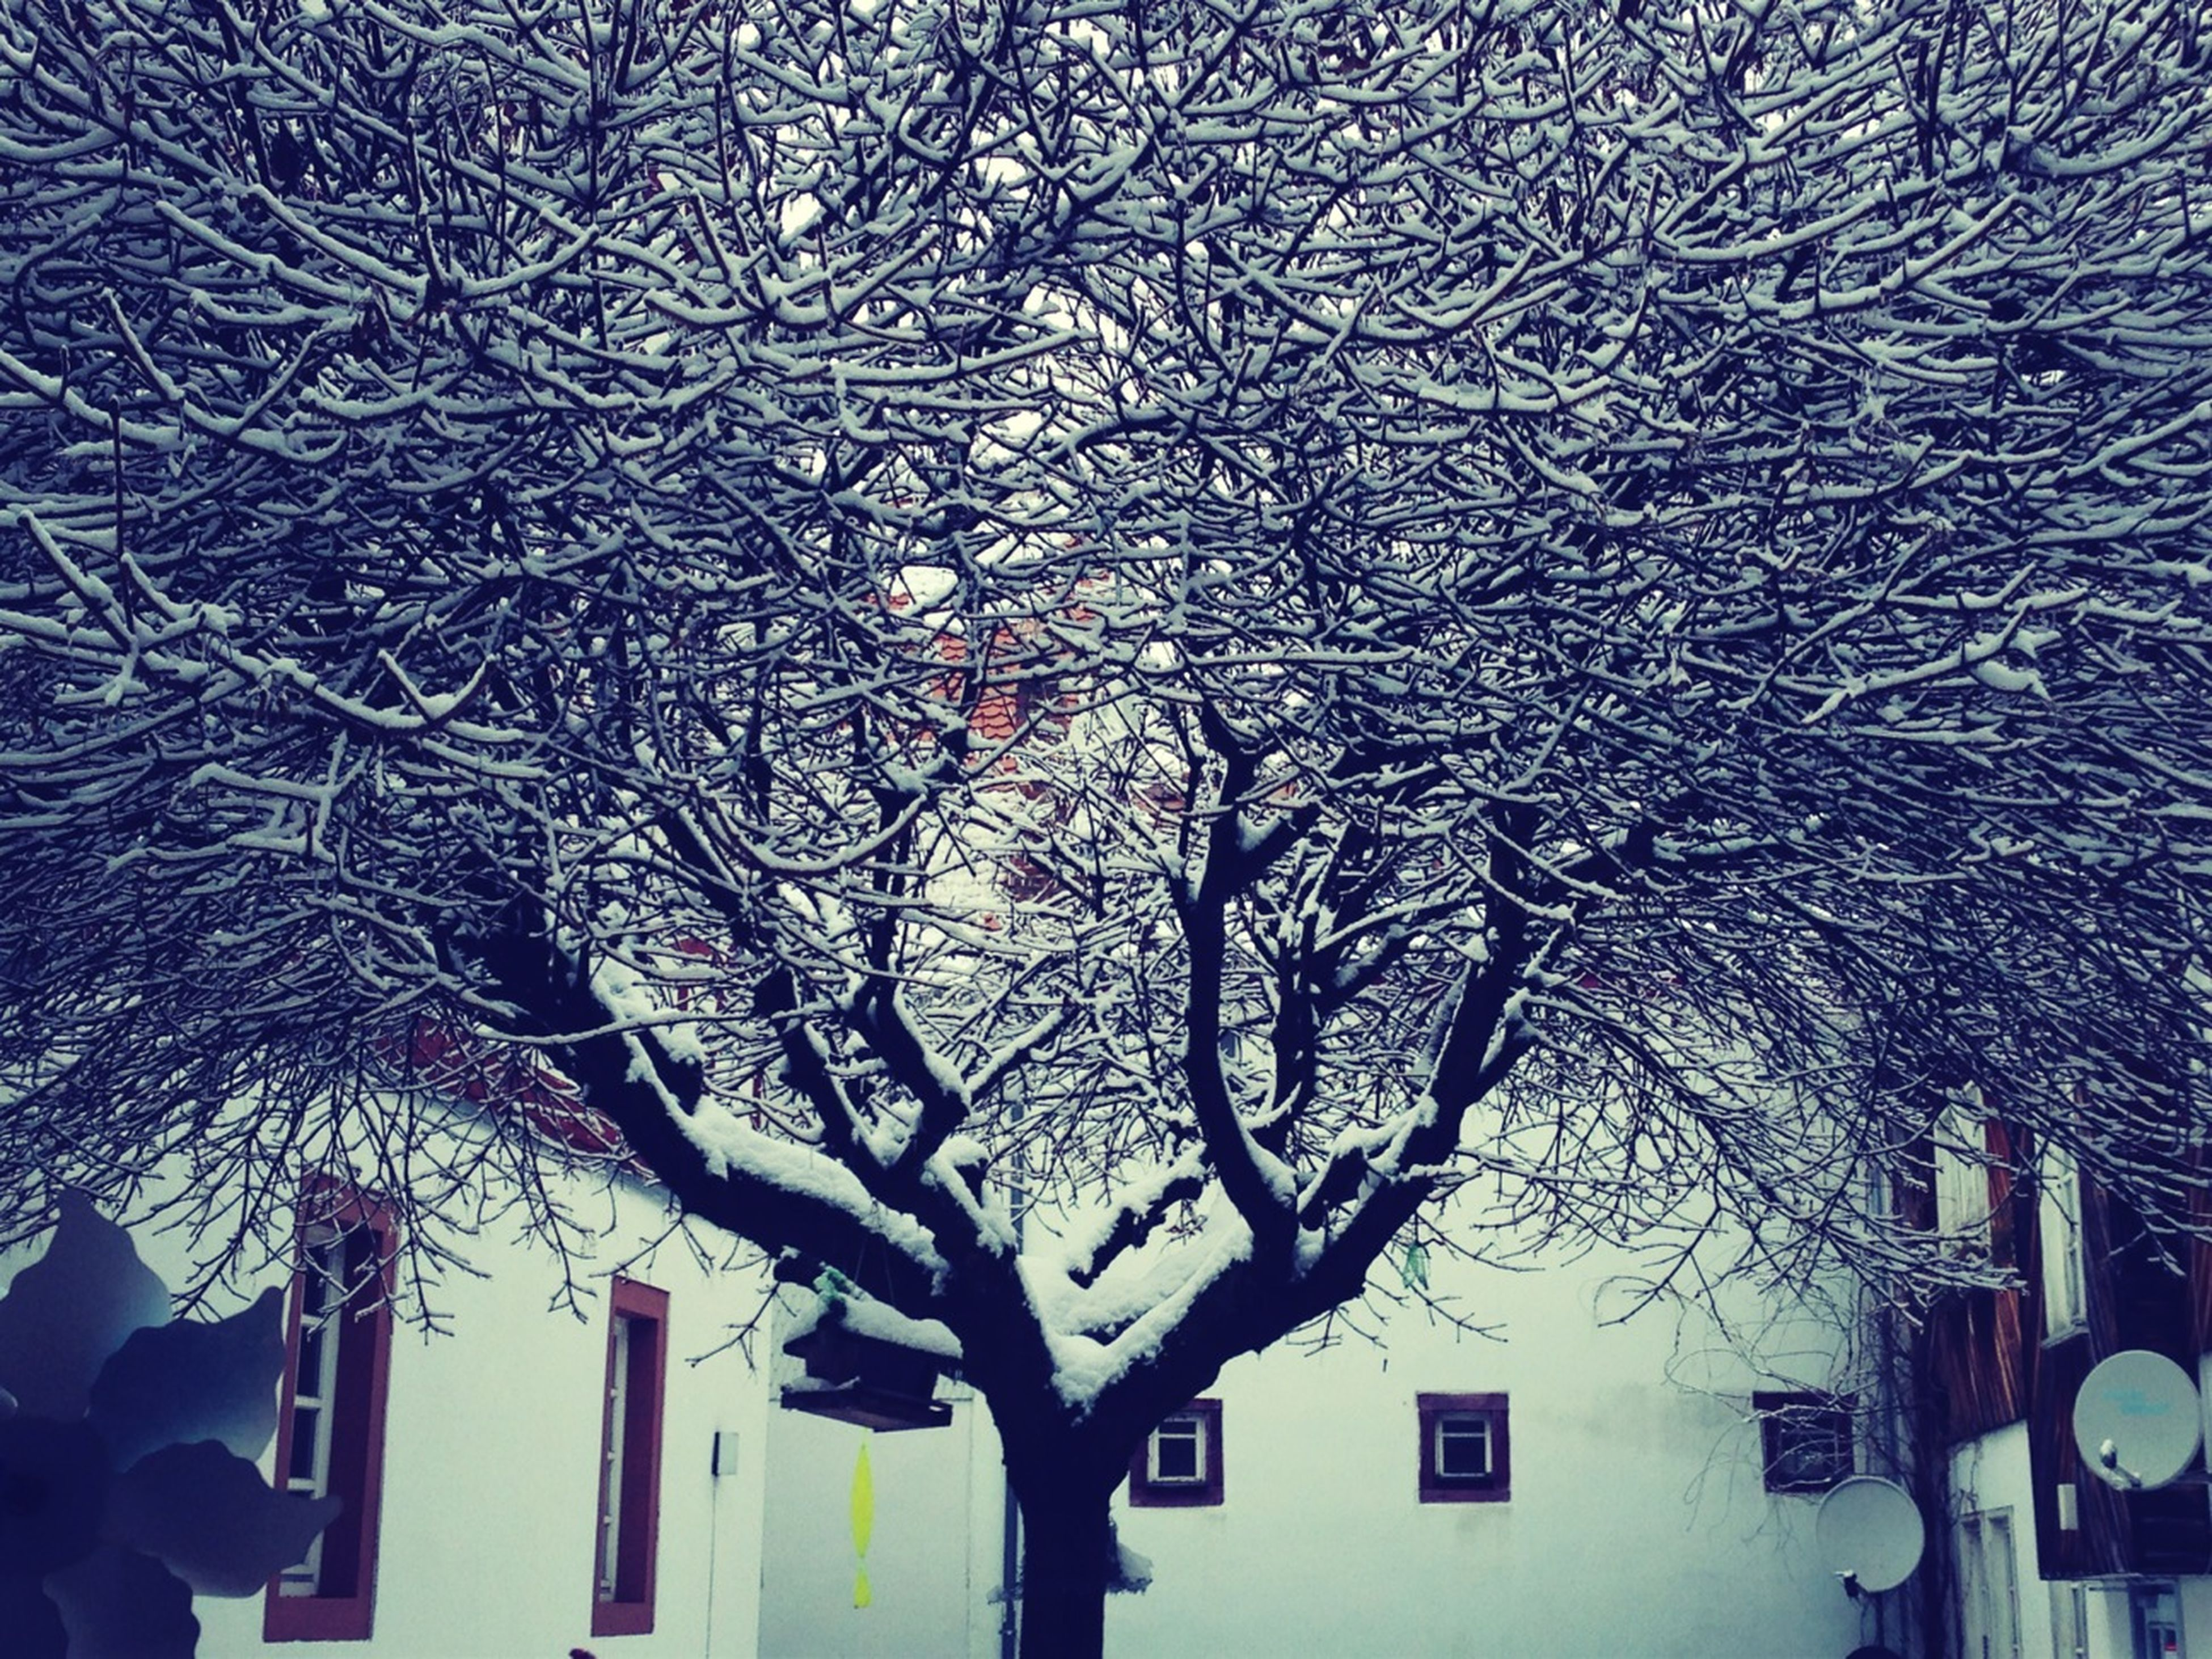 architecture, bare tree, built structure, building exterior, low angle view, winter, tree, snow, cold temperature, branch, season, weather, house, building, nature, outdoors, no people, residential building, day, sky